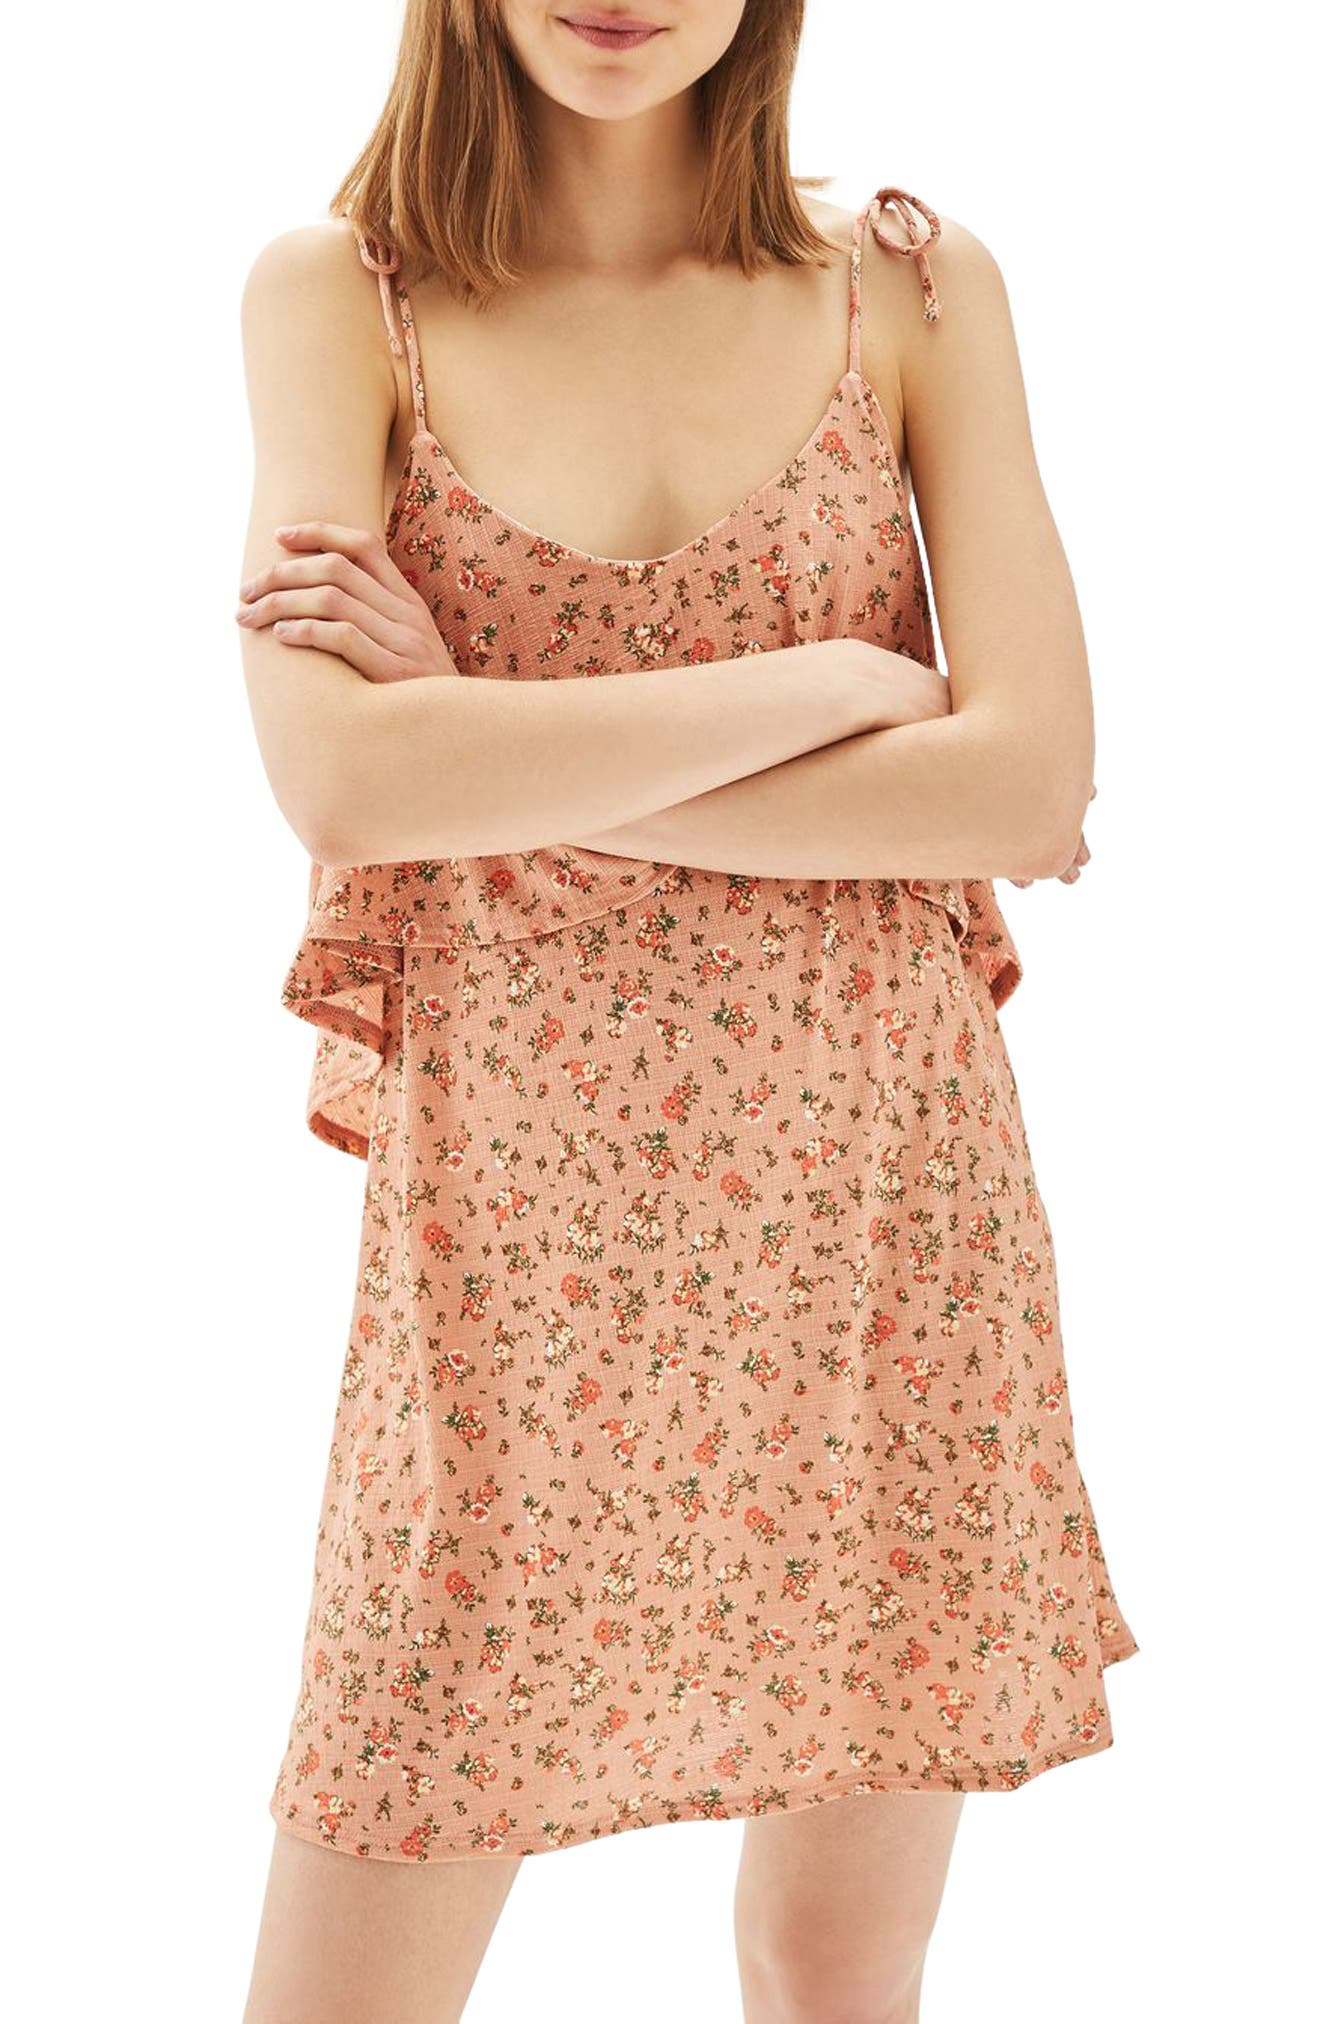 Topshop Ditsy Floral Tie Sundress